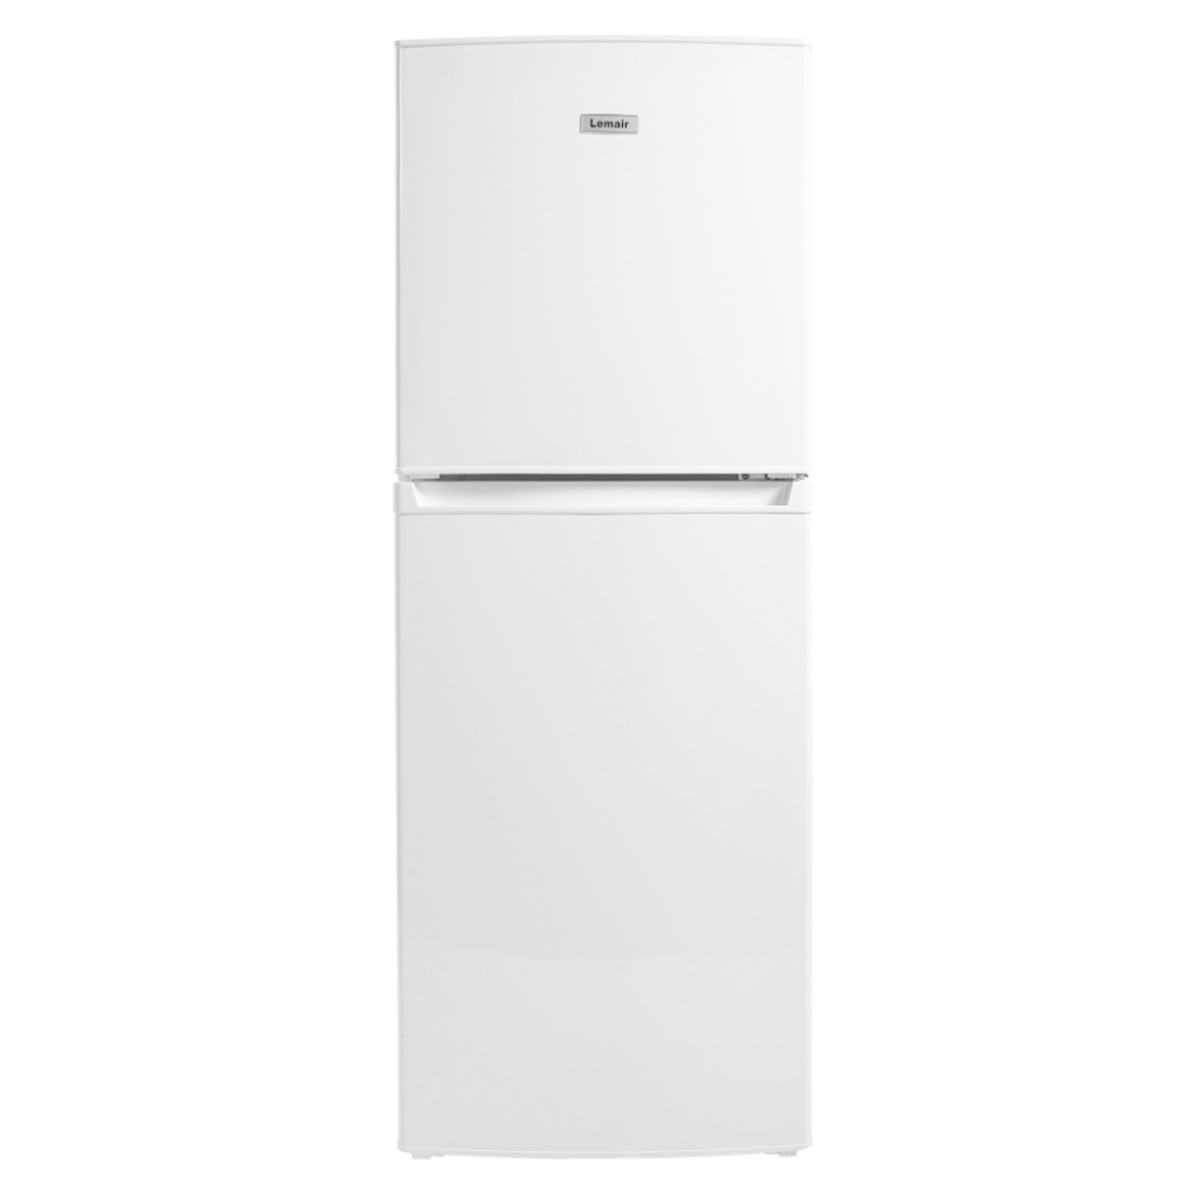 Lemair LTM221W 221Litres Top Mount Fridge 104740